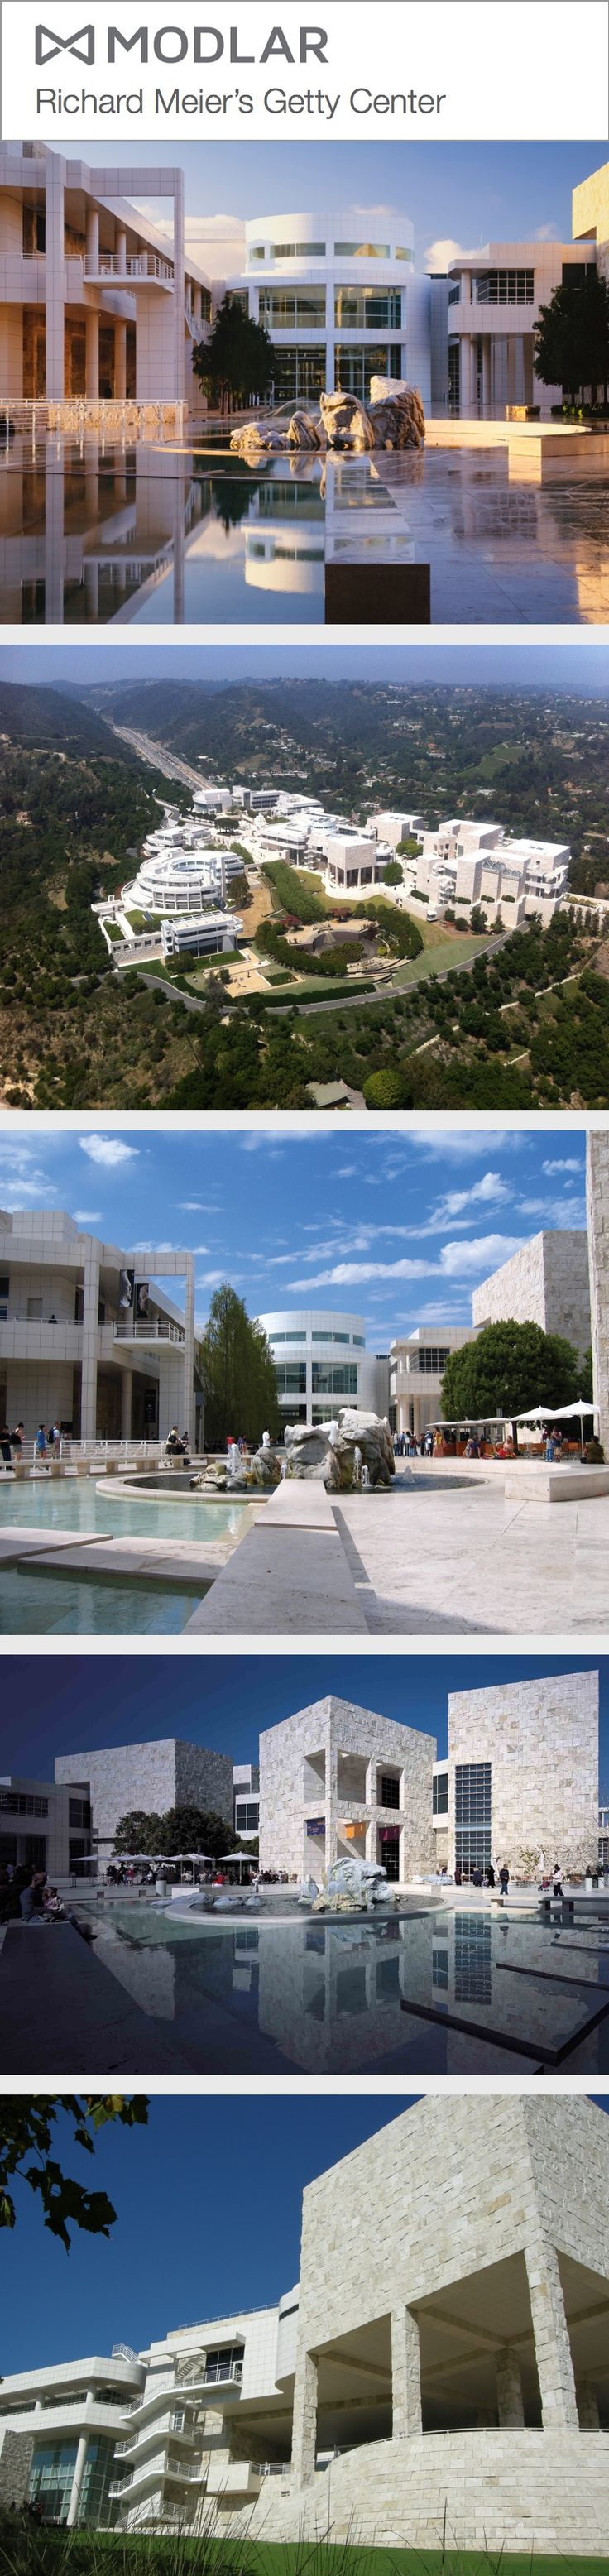 Richard Meier's Getty Center, LA, USA #Meier #Architecture modlar.com